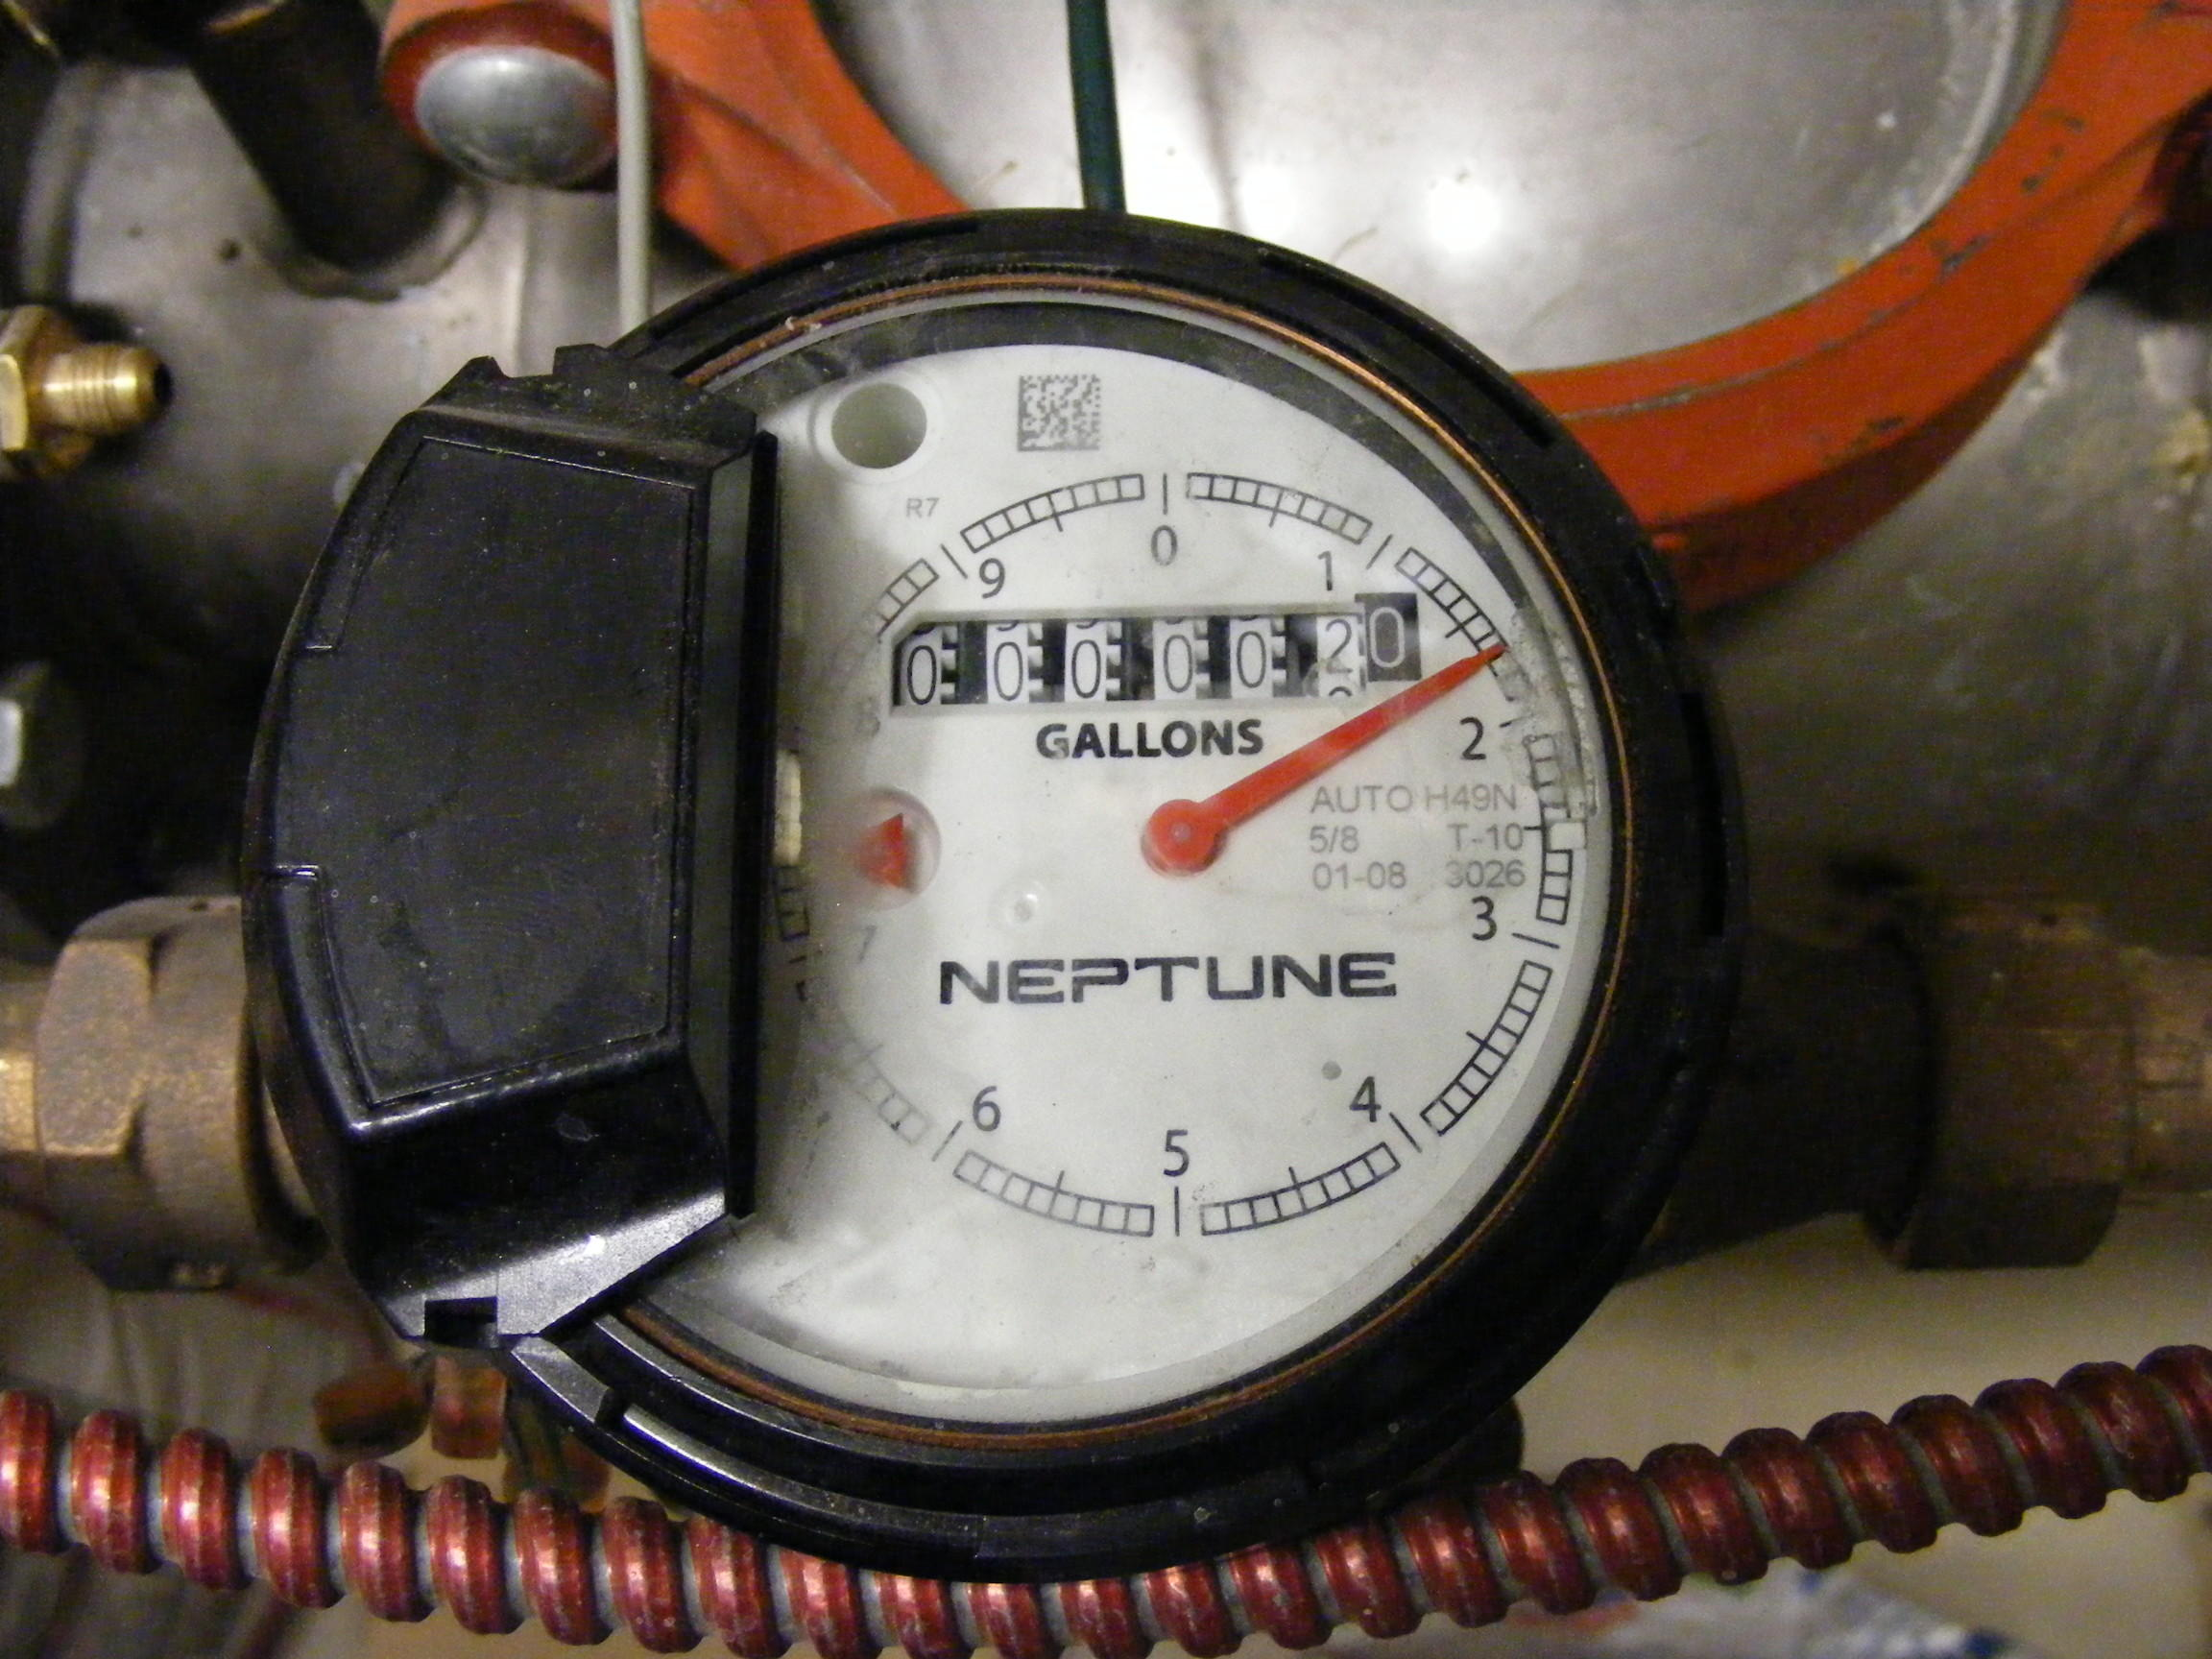 New Technology Can T Read Old Water Meters